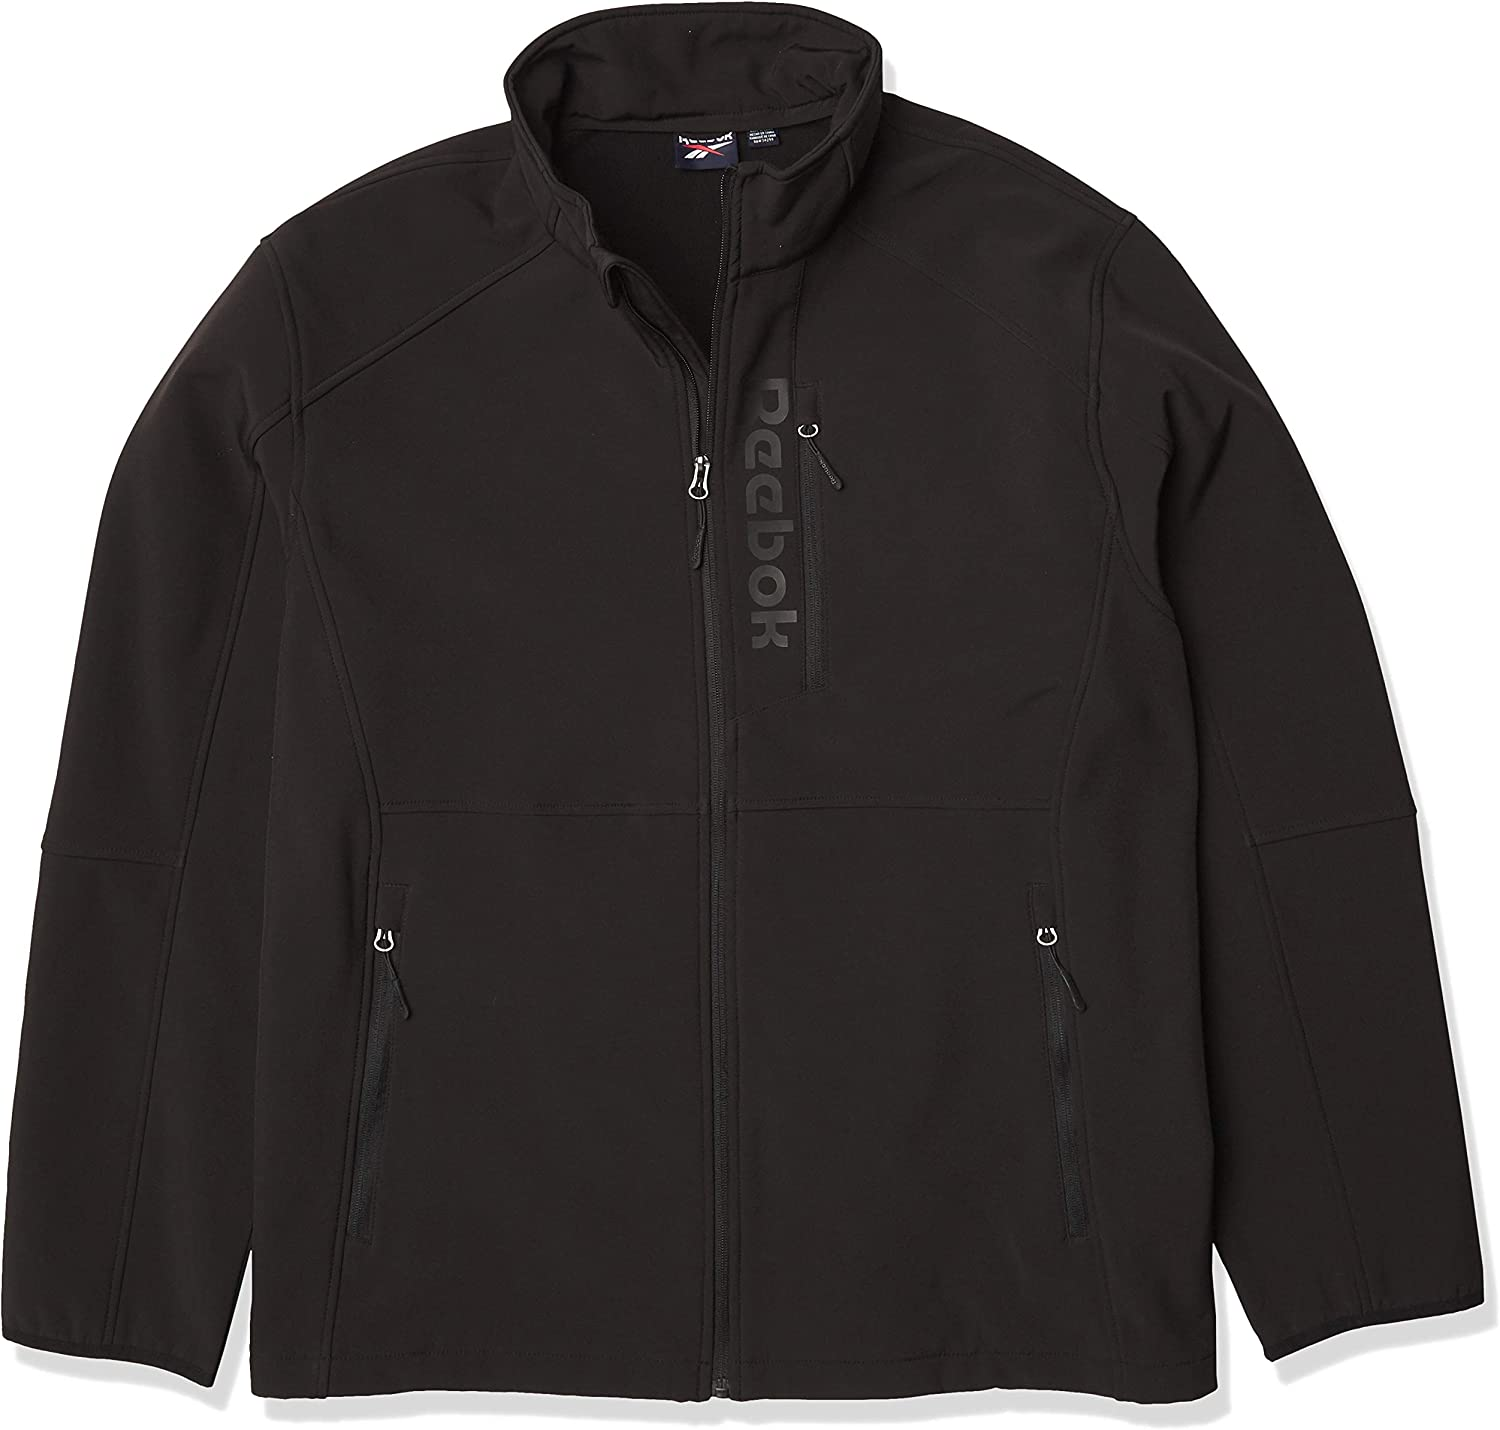 We OFFer at cheap prices Reebok Ranking TOP14 Men's Soft Woven Jacket